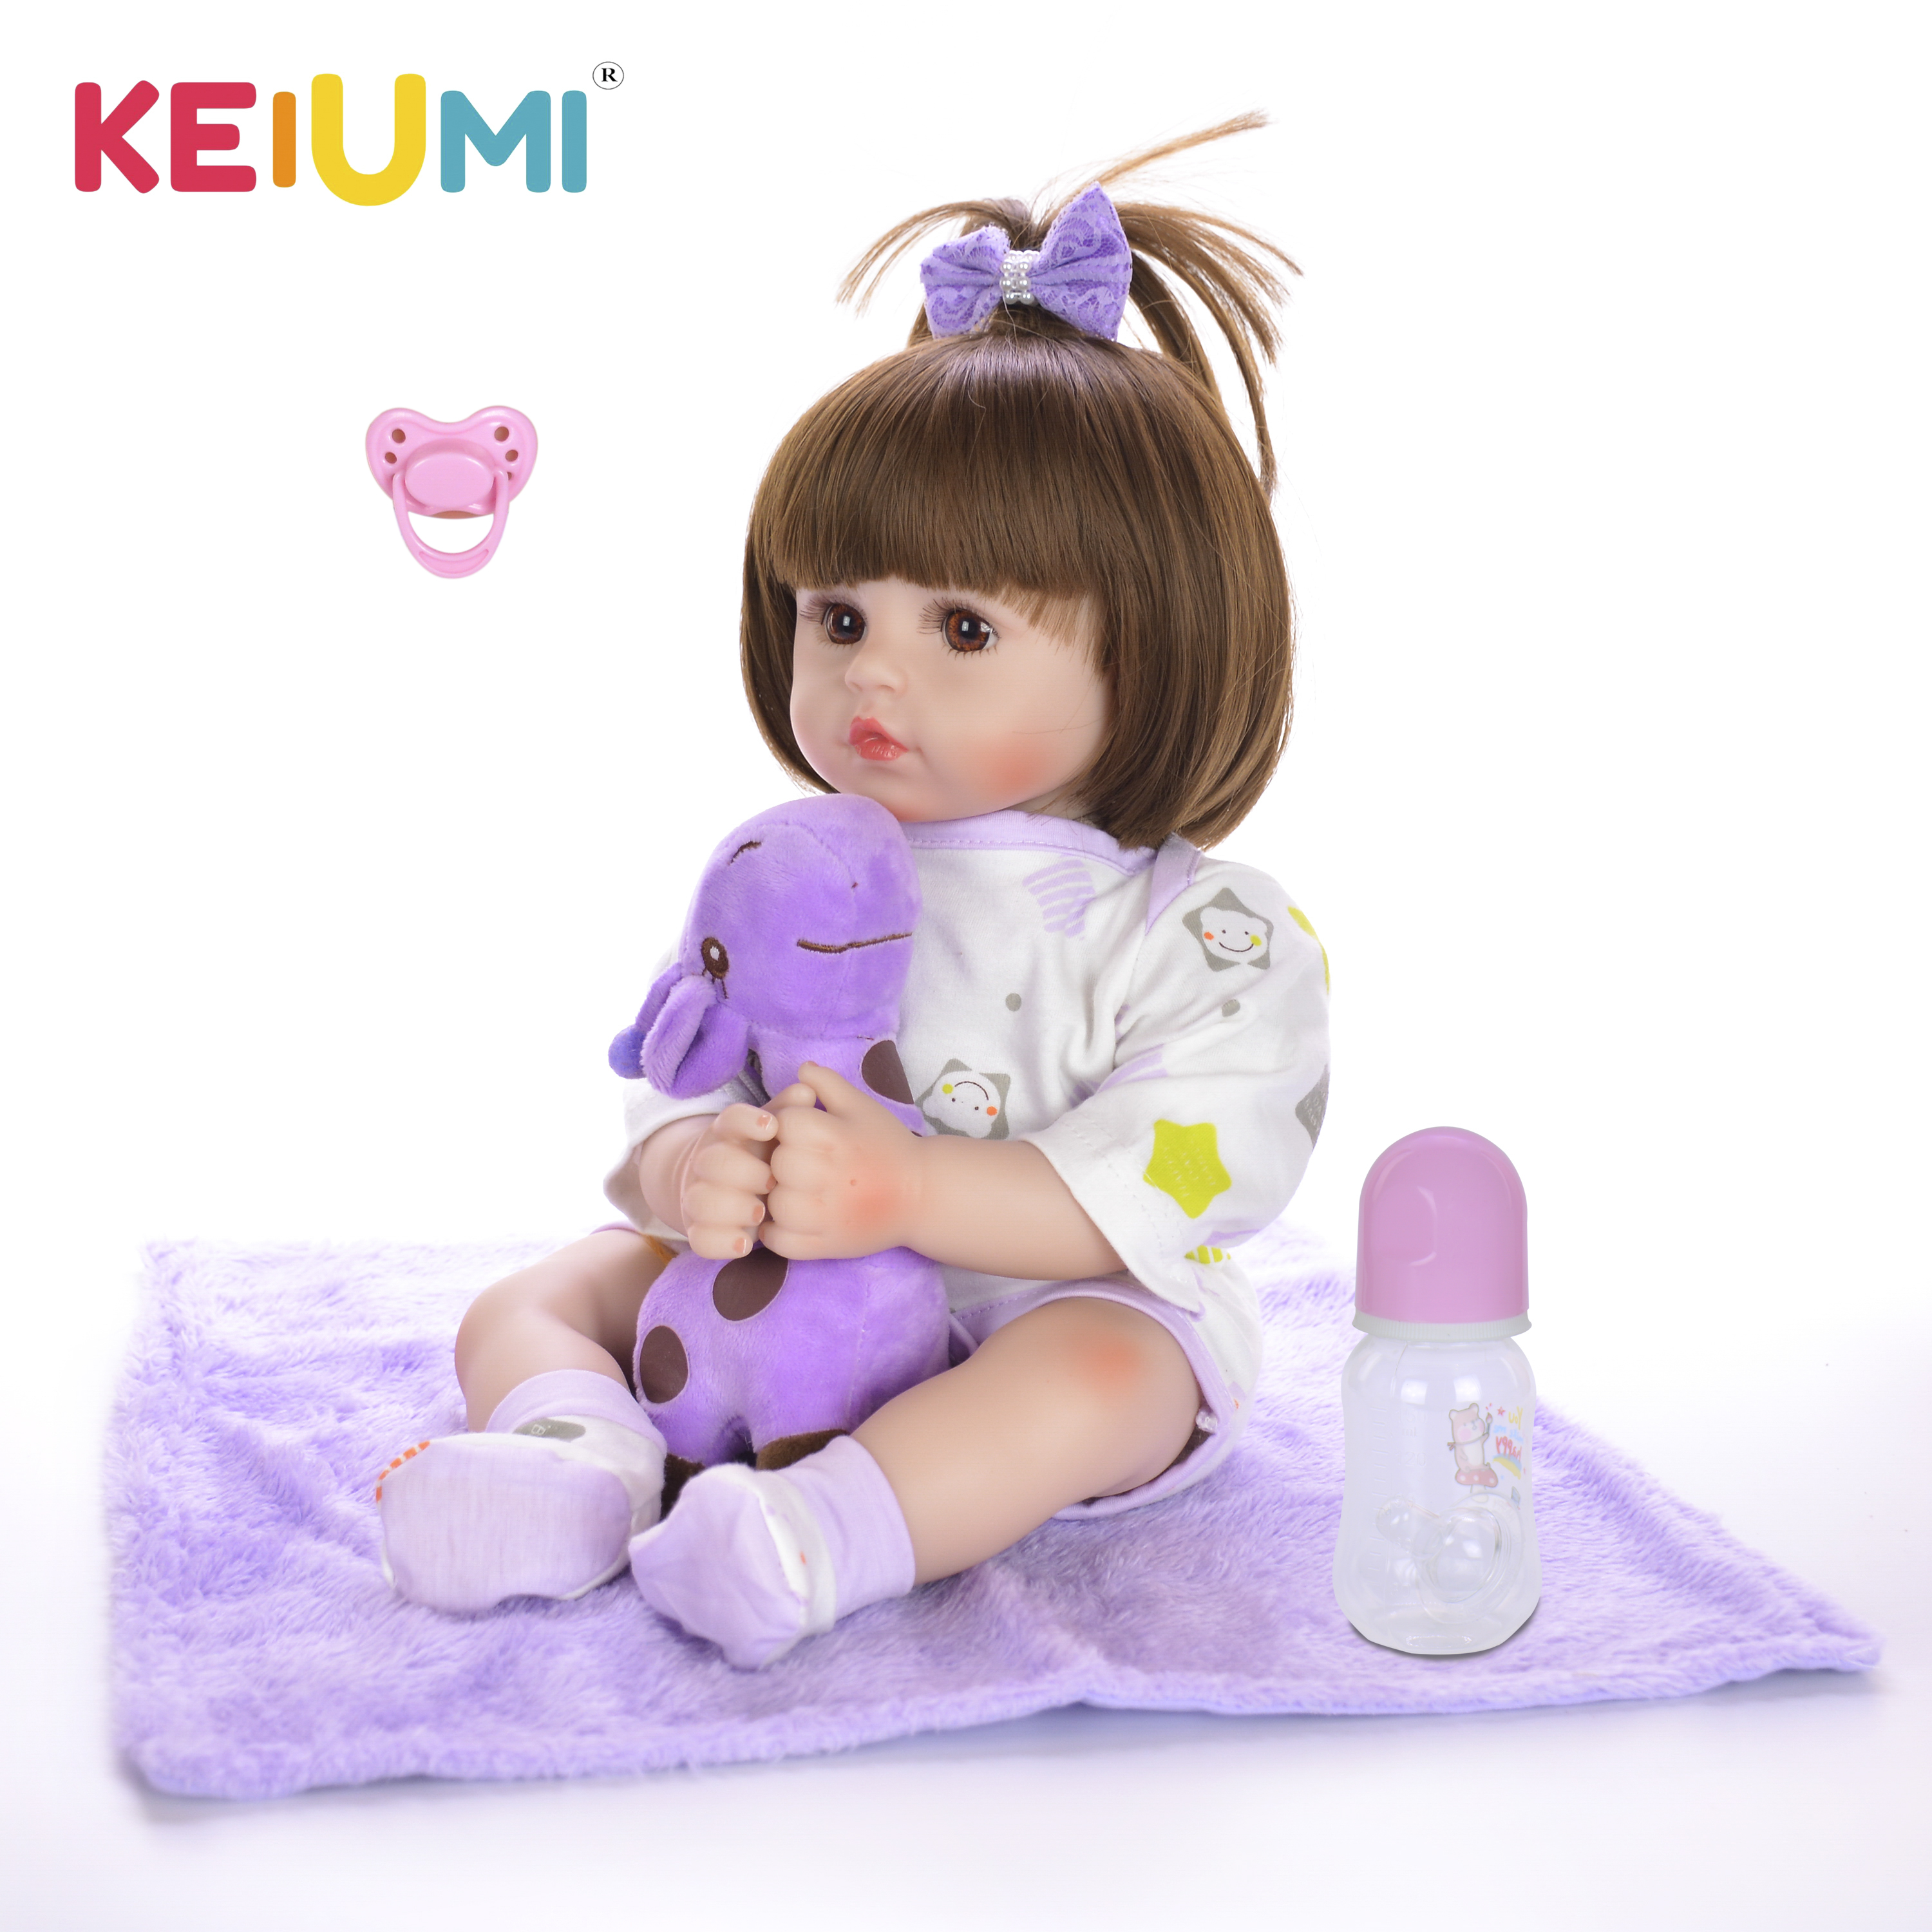 KEIUMI New Design Reborn Baby Doll Soft Silicone Customized Doll Baby Toy For Kids Birthday Gift 3 5 Year Old Girl Playmate-in Dolls from Toys & Hobbies    1